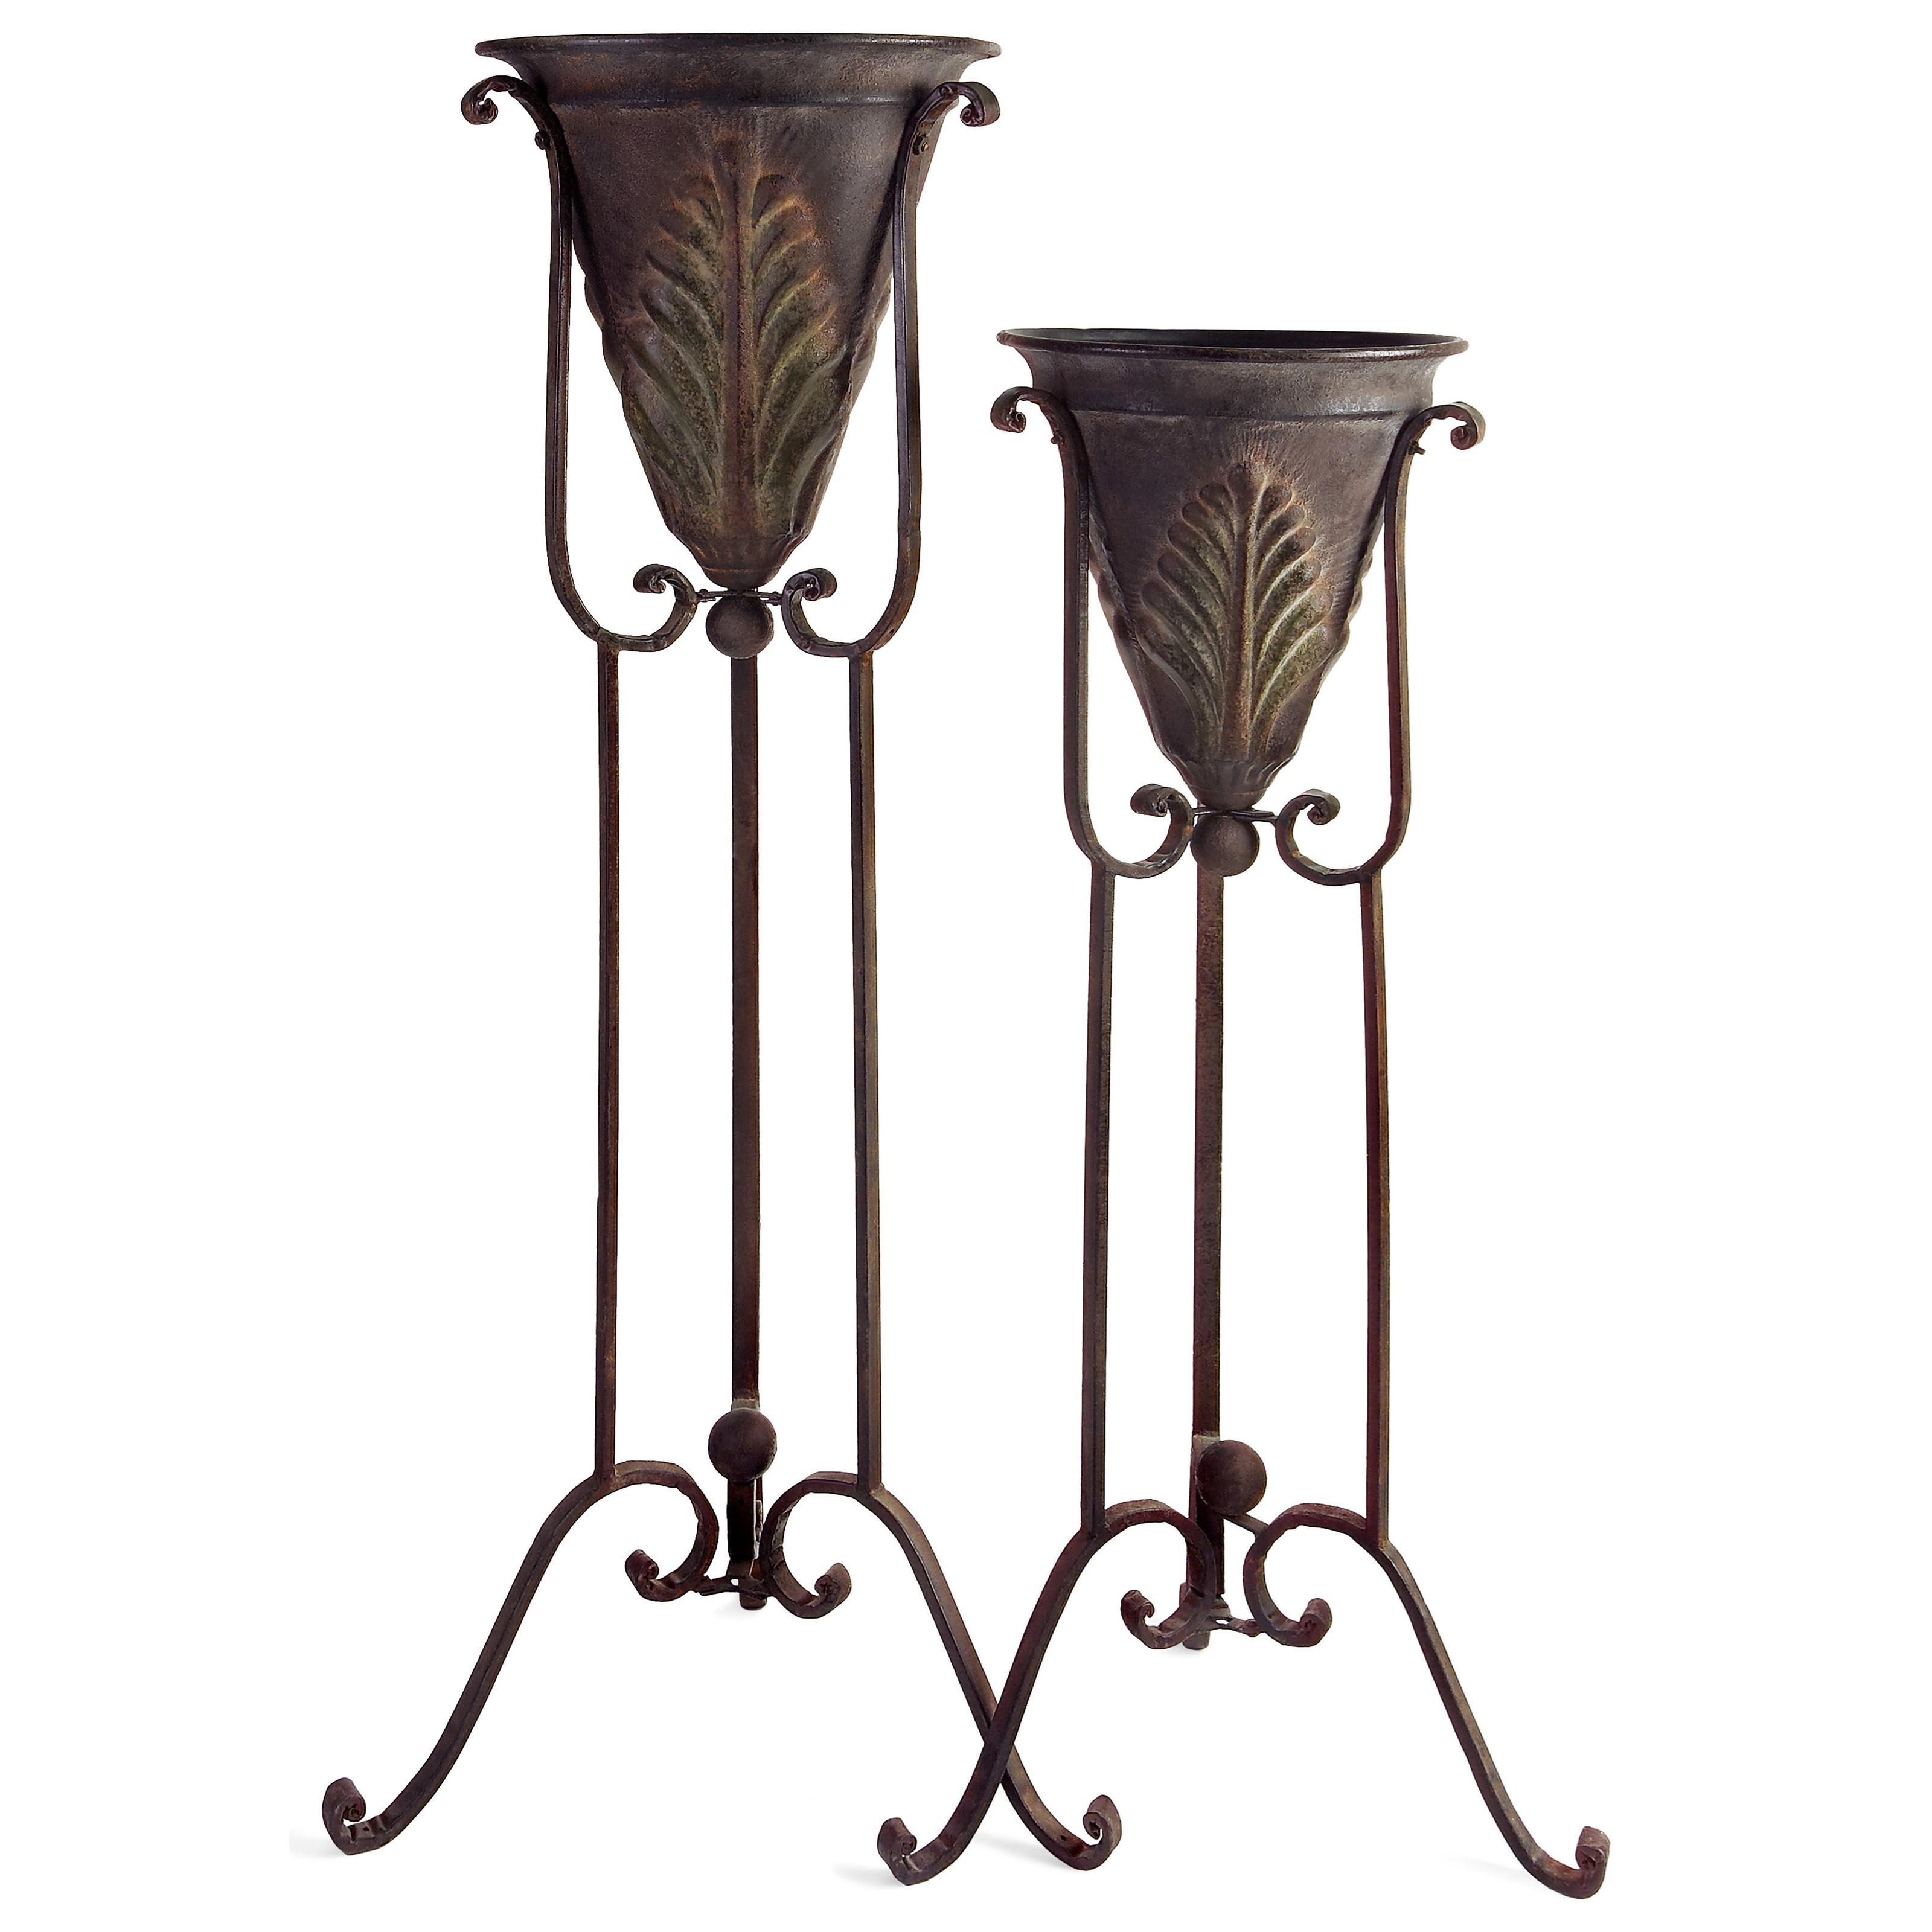 Accessories Acanthus Plant Stands - Set of 2 by IMAX Worldwide Home at Alison Craig Home Furnishings